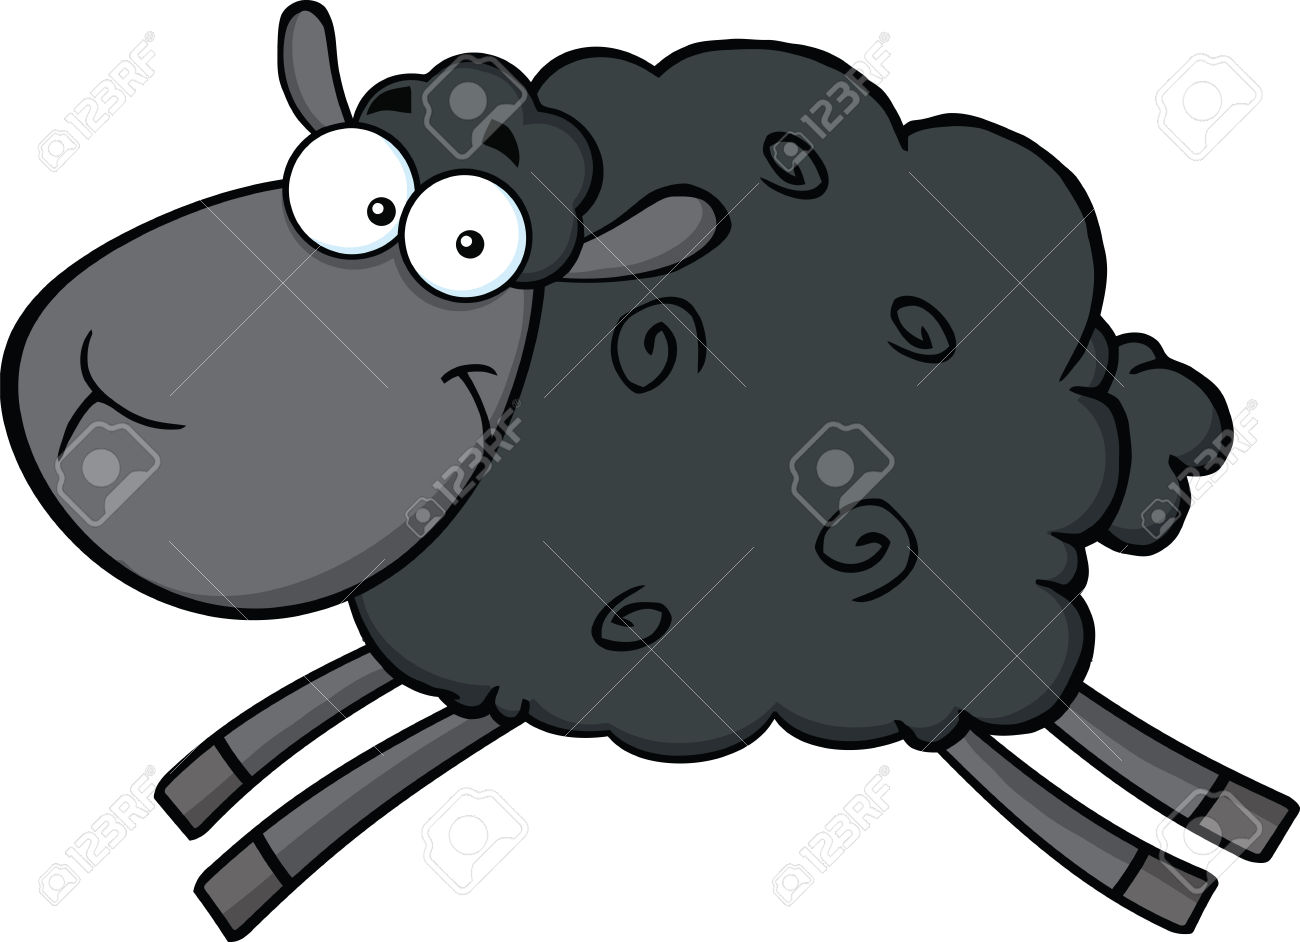 1300x942 Lamb Clipart, Suggestions For Lamb Clipart, Download Lamb Clipart